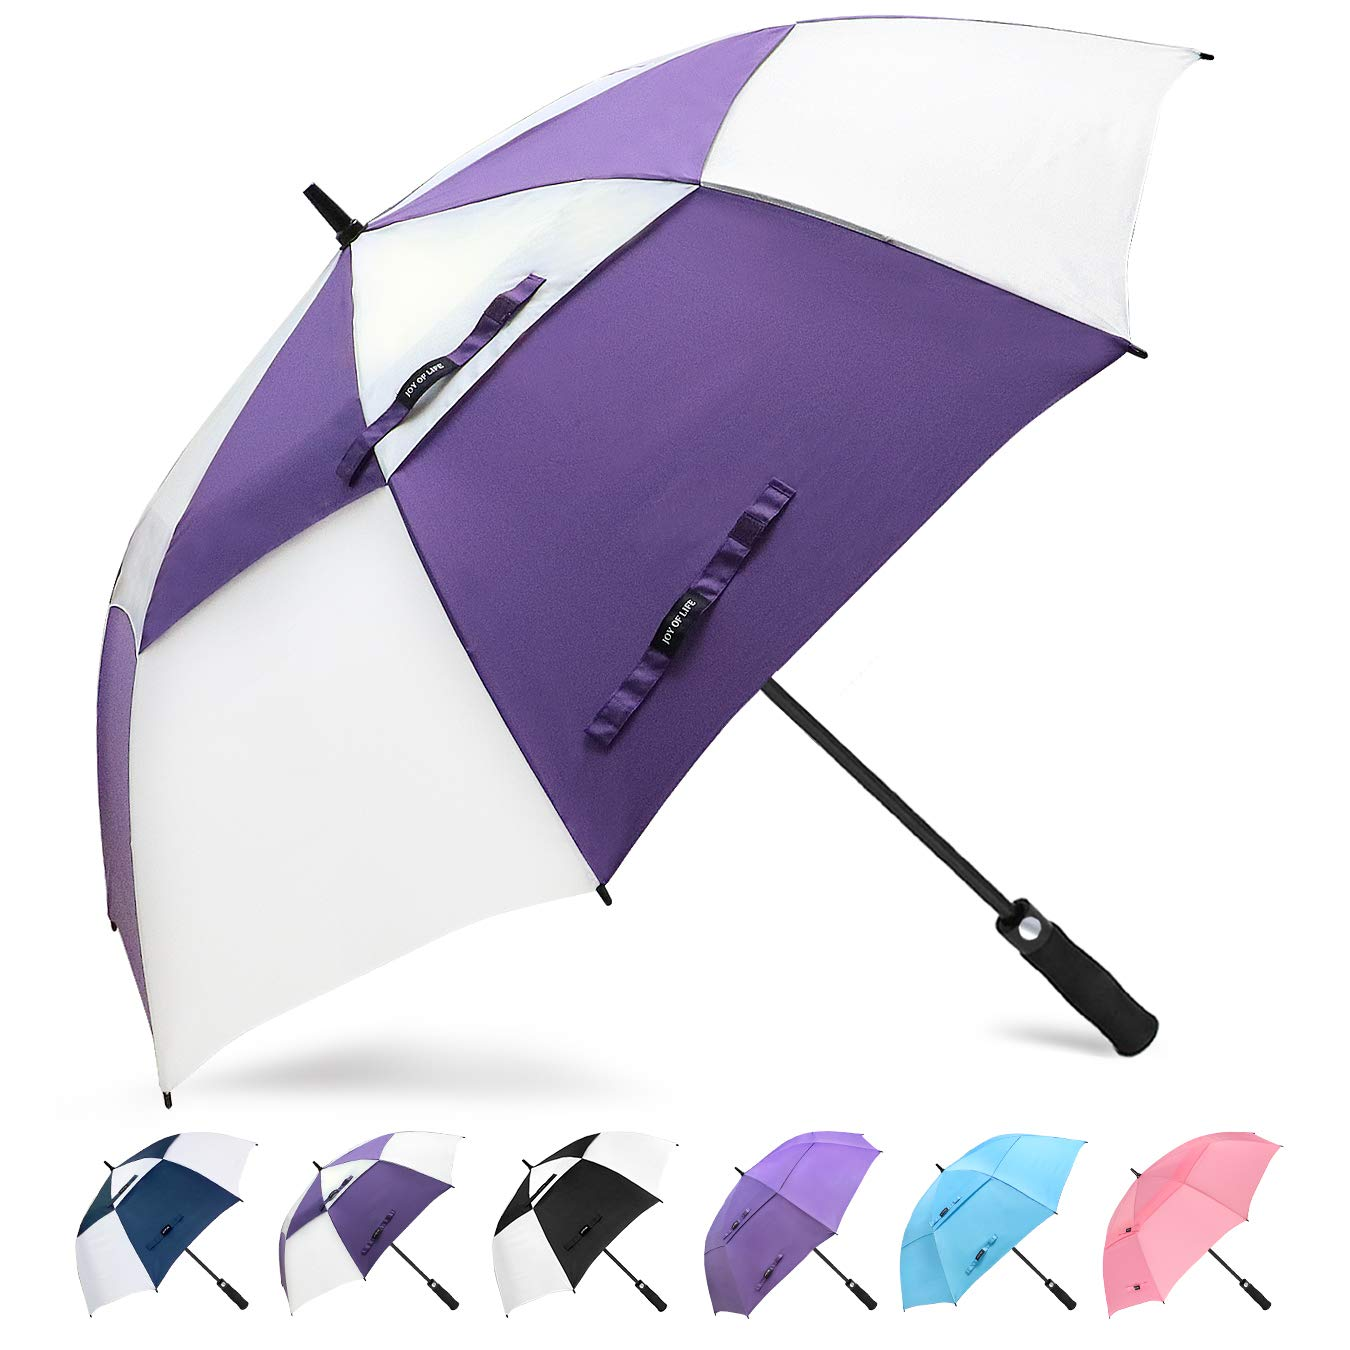 ZOMAKE Golf Umbrella 62 Inch, Large Windproof Umbrellas Automatic Open Oversize Rain Umbrella with Double Canopy for Men - Vented Stick Umbrellas by ZOMAKE